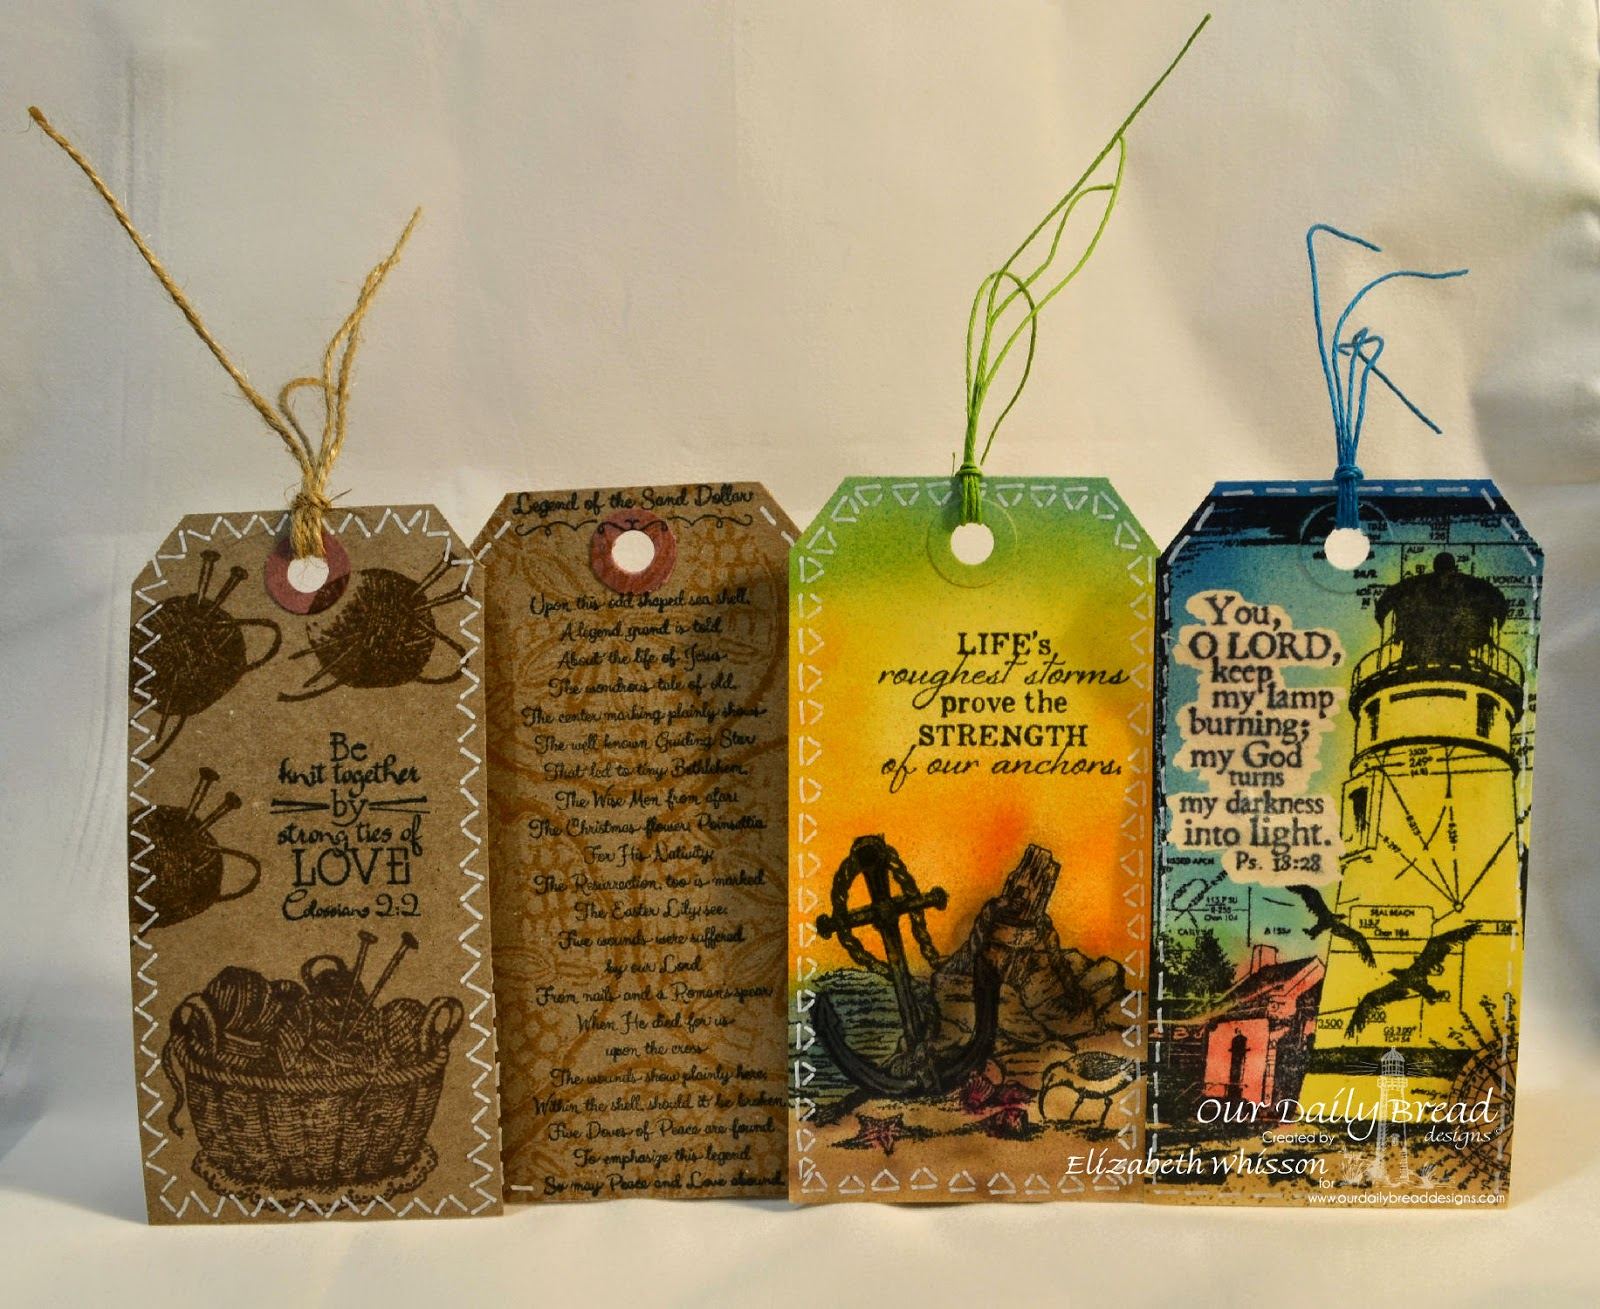 Our Daily Bread Designs, tags, Elizabeth Whisson, ODBD, ODBDDT, Hand Knit, faux stitching, Ocean Treasures, Sand Dollar Bookmark, Anchor the Soul, Keep my Lamp burning, Psalm 18:28, Colossians 2:2, bible verse, Copic aribrush